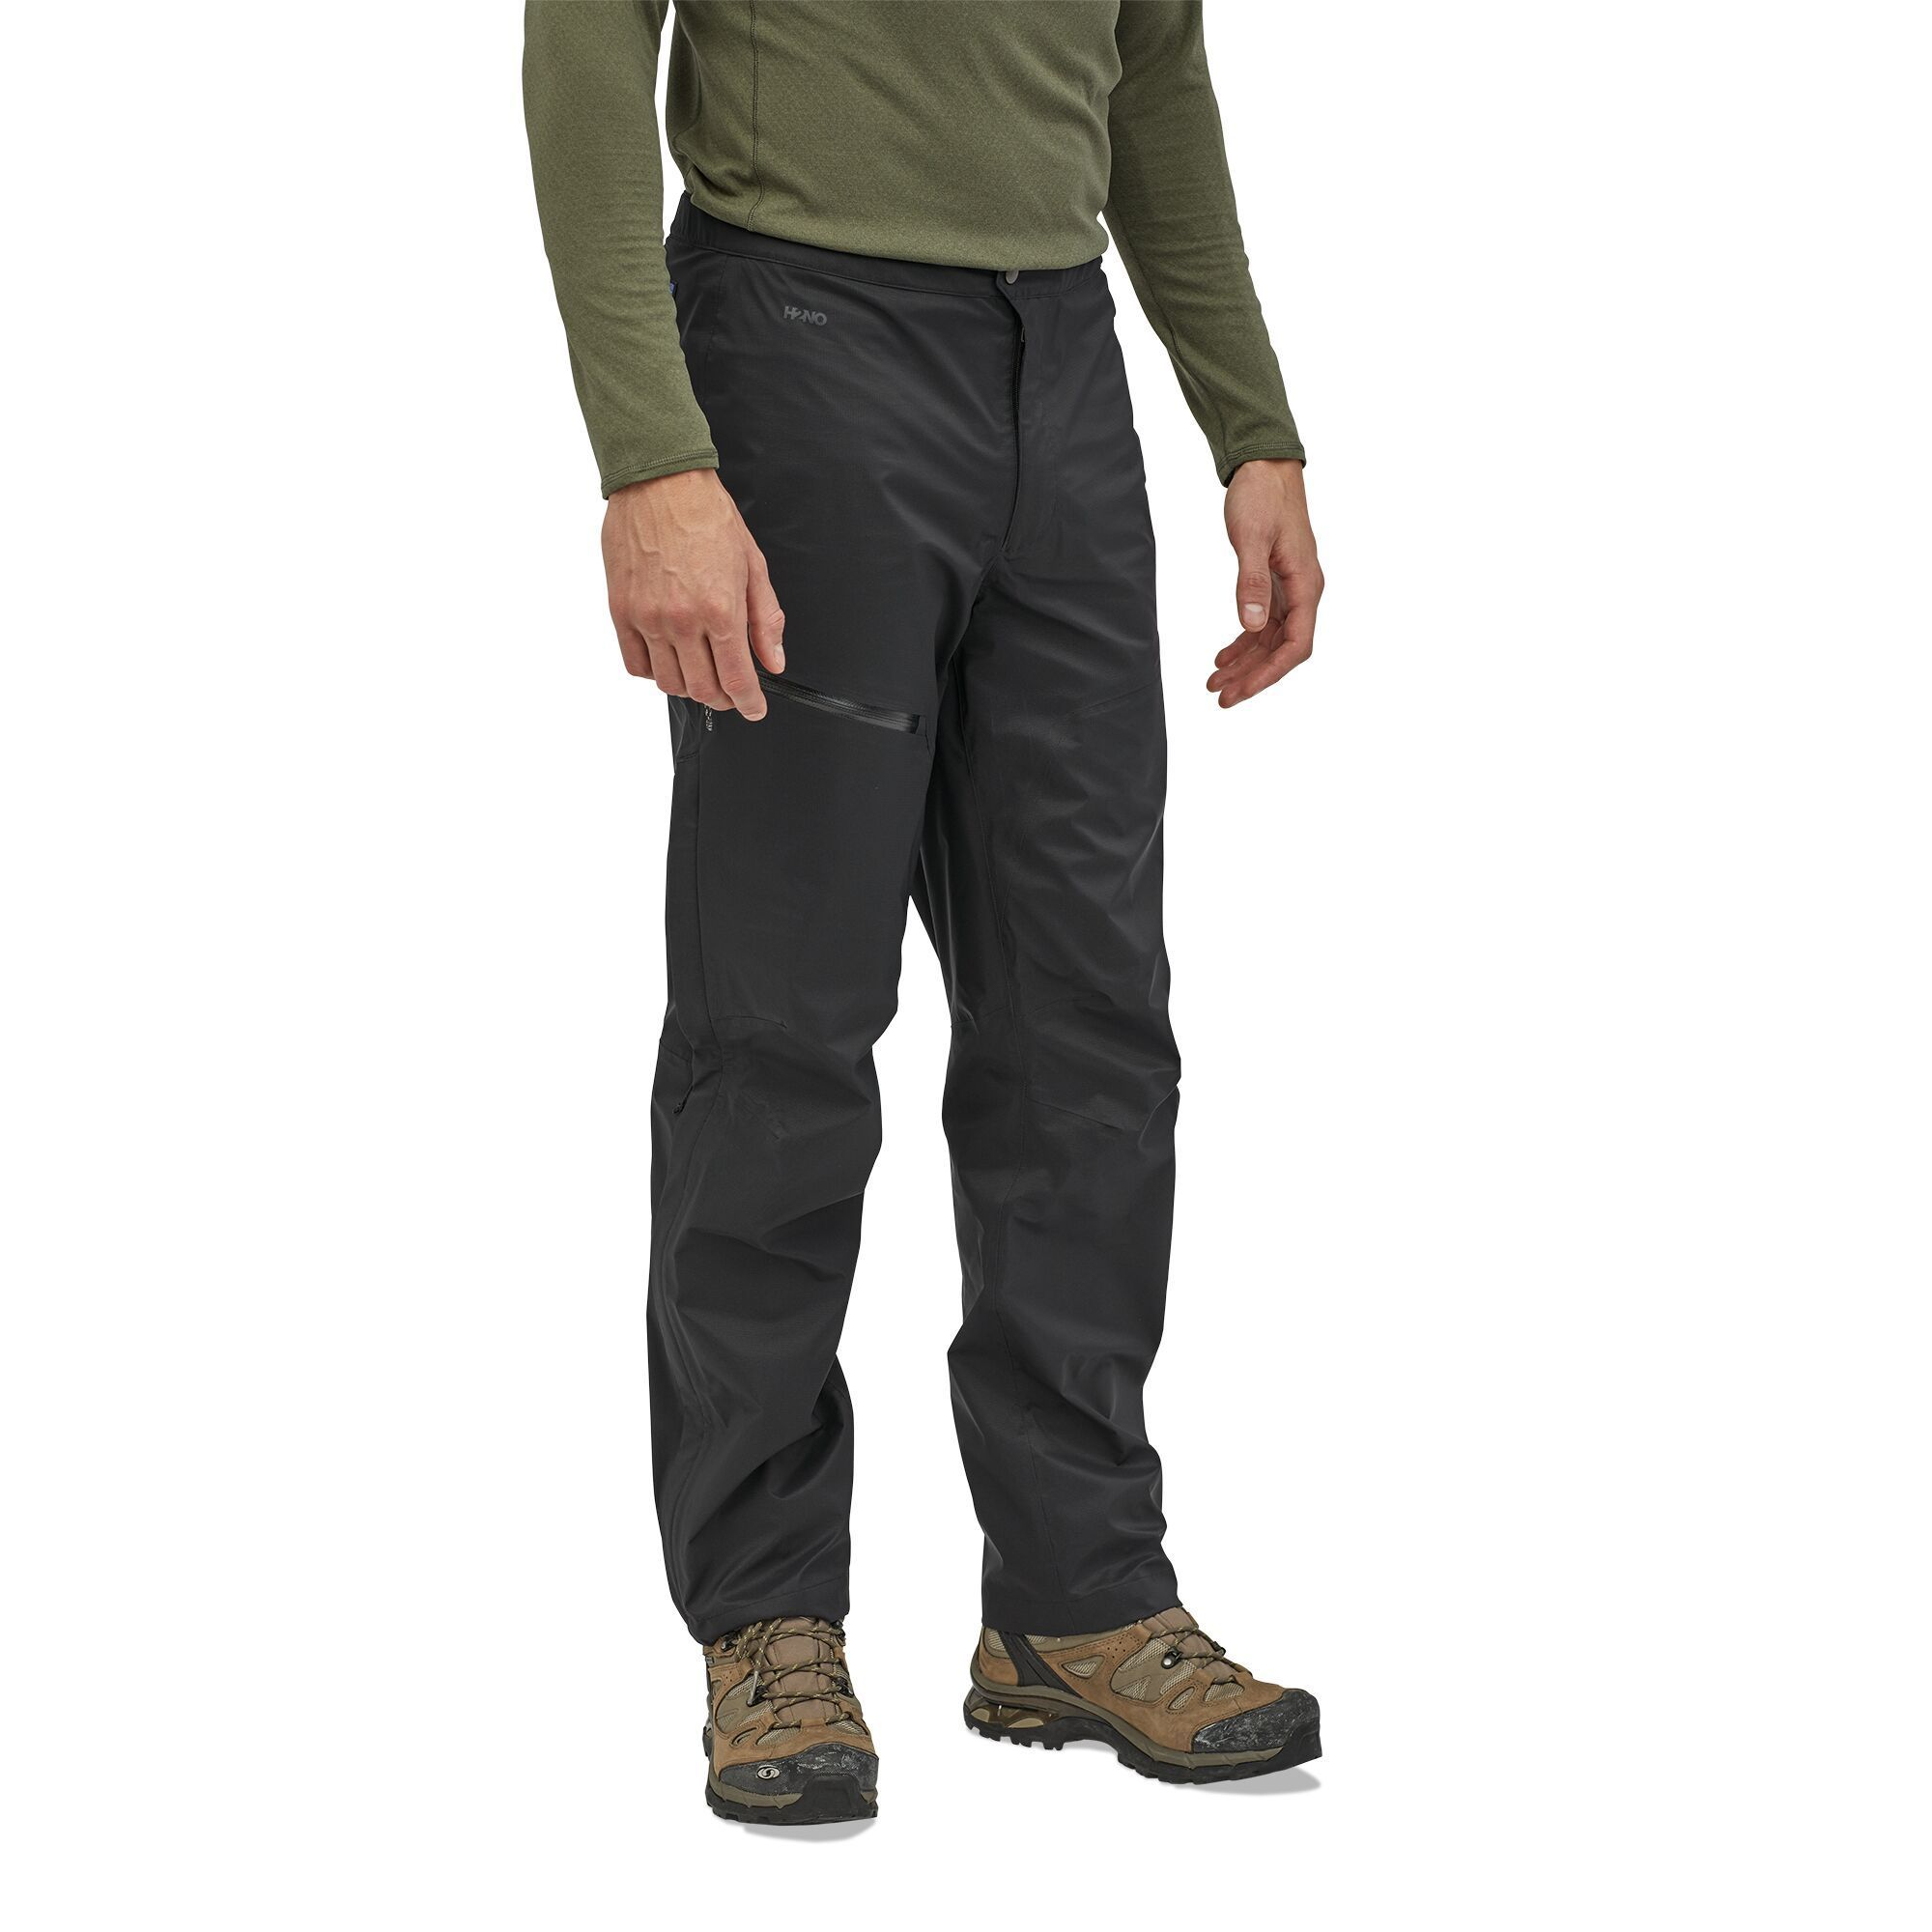 Patagonia - M's Rainshadow Pants - 100% Recycled Nylon - Weekendbee - sustainable sportswear